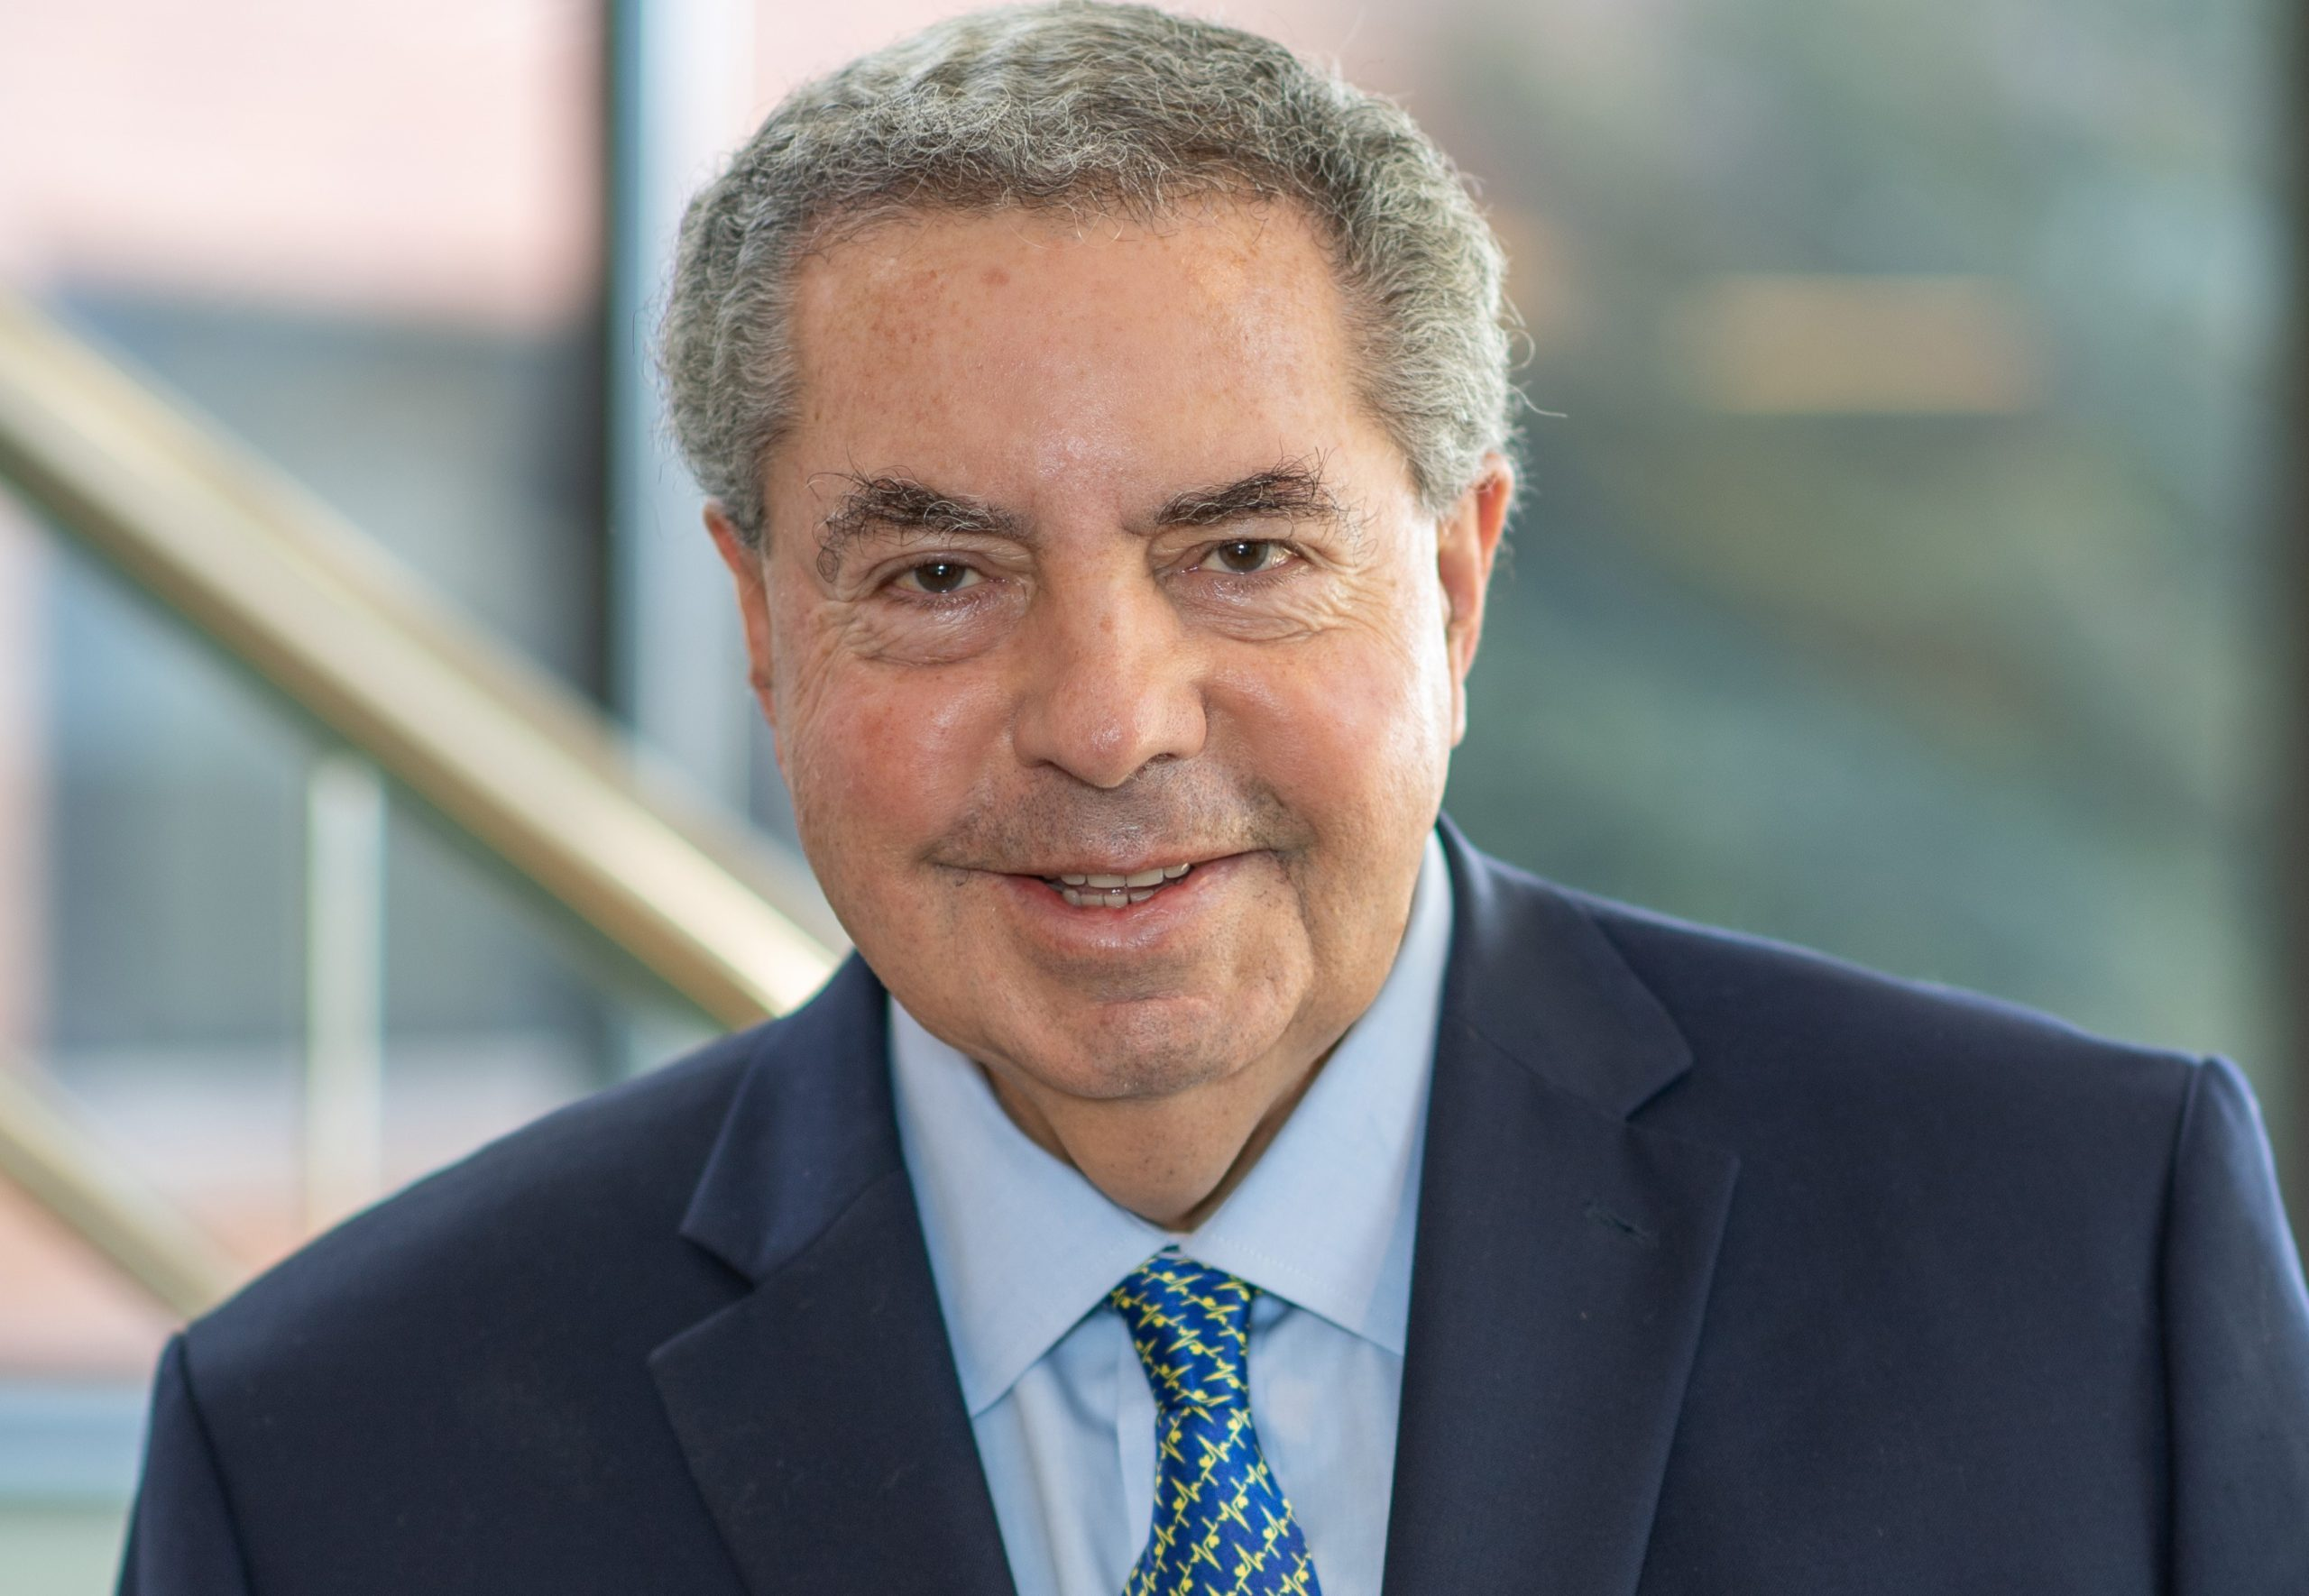 MLH Researcher Receives Lifetime Achievement Award from American College of Cardiology